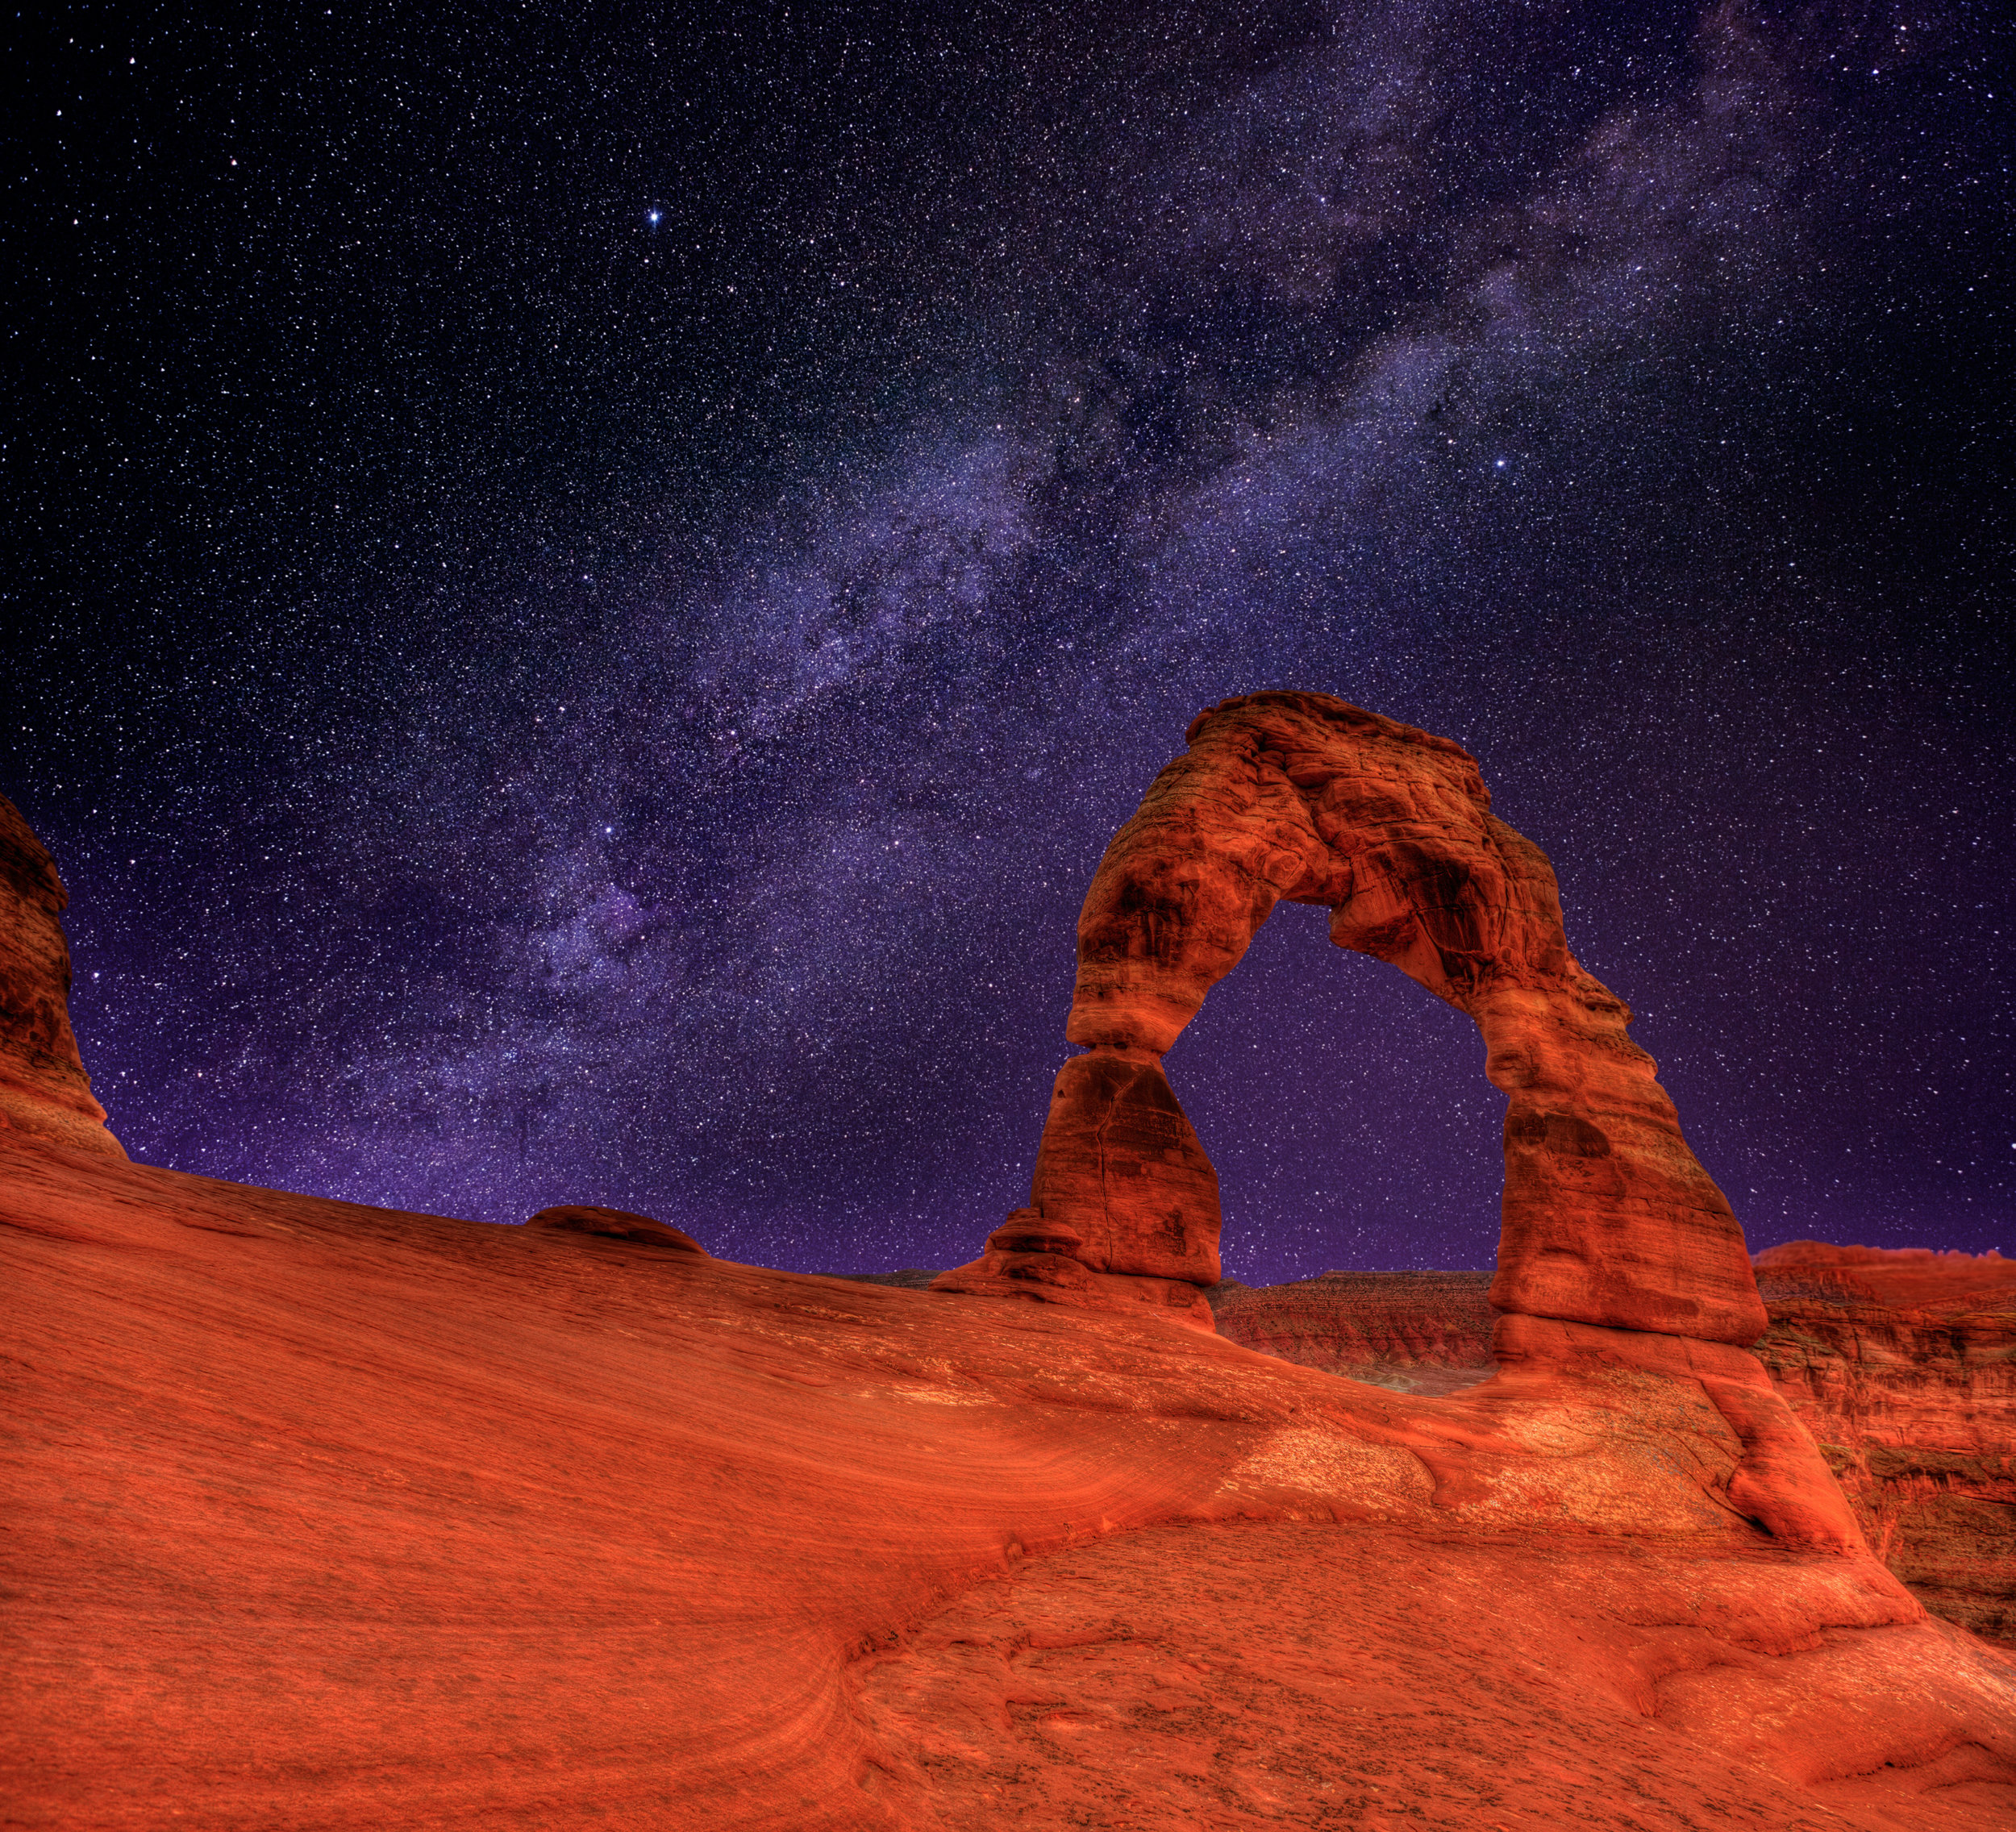 moab utah photography workshop arches national park delicate arch milky way